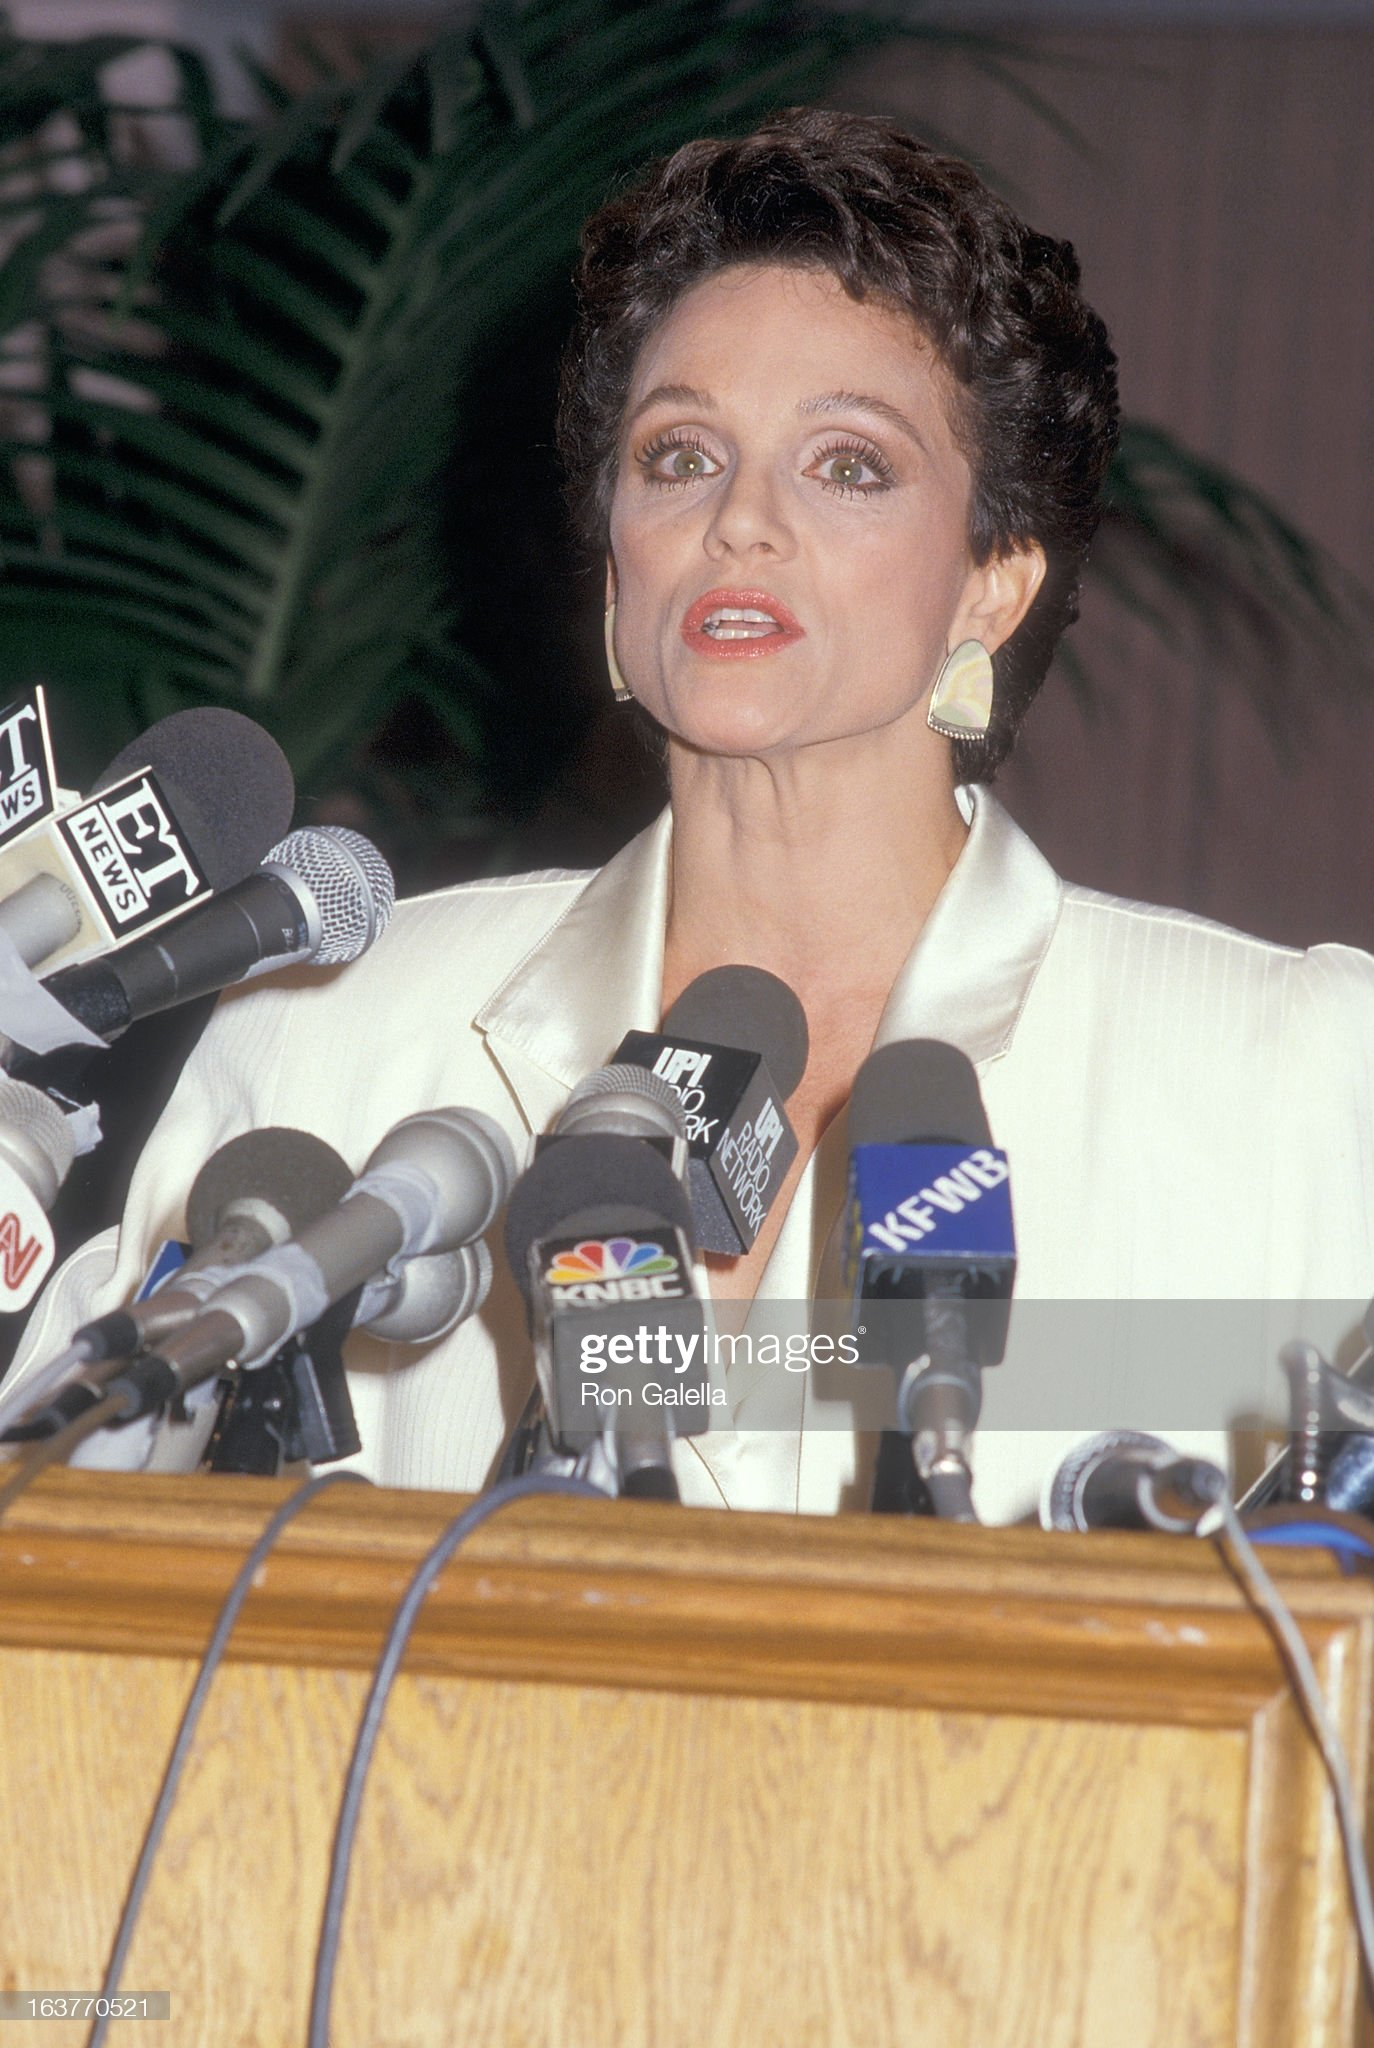 actress-valerie-harper-addresses-the-press-to-speak-about-being-fired-picture-id163770521